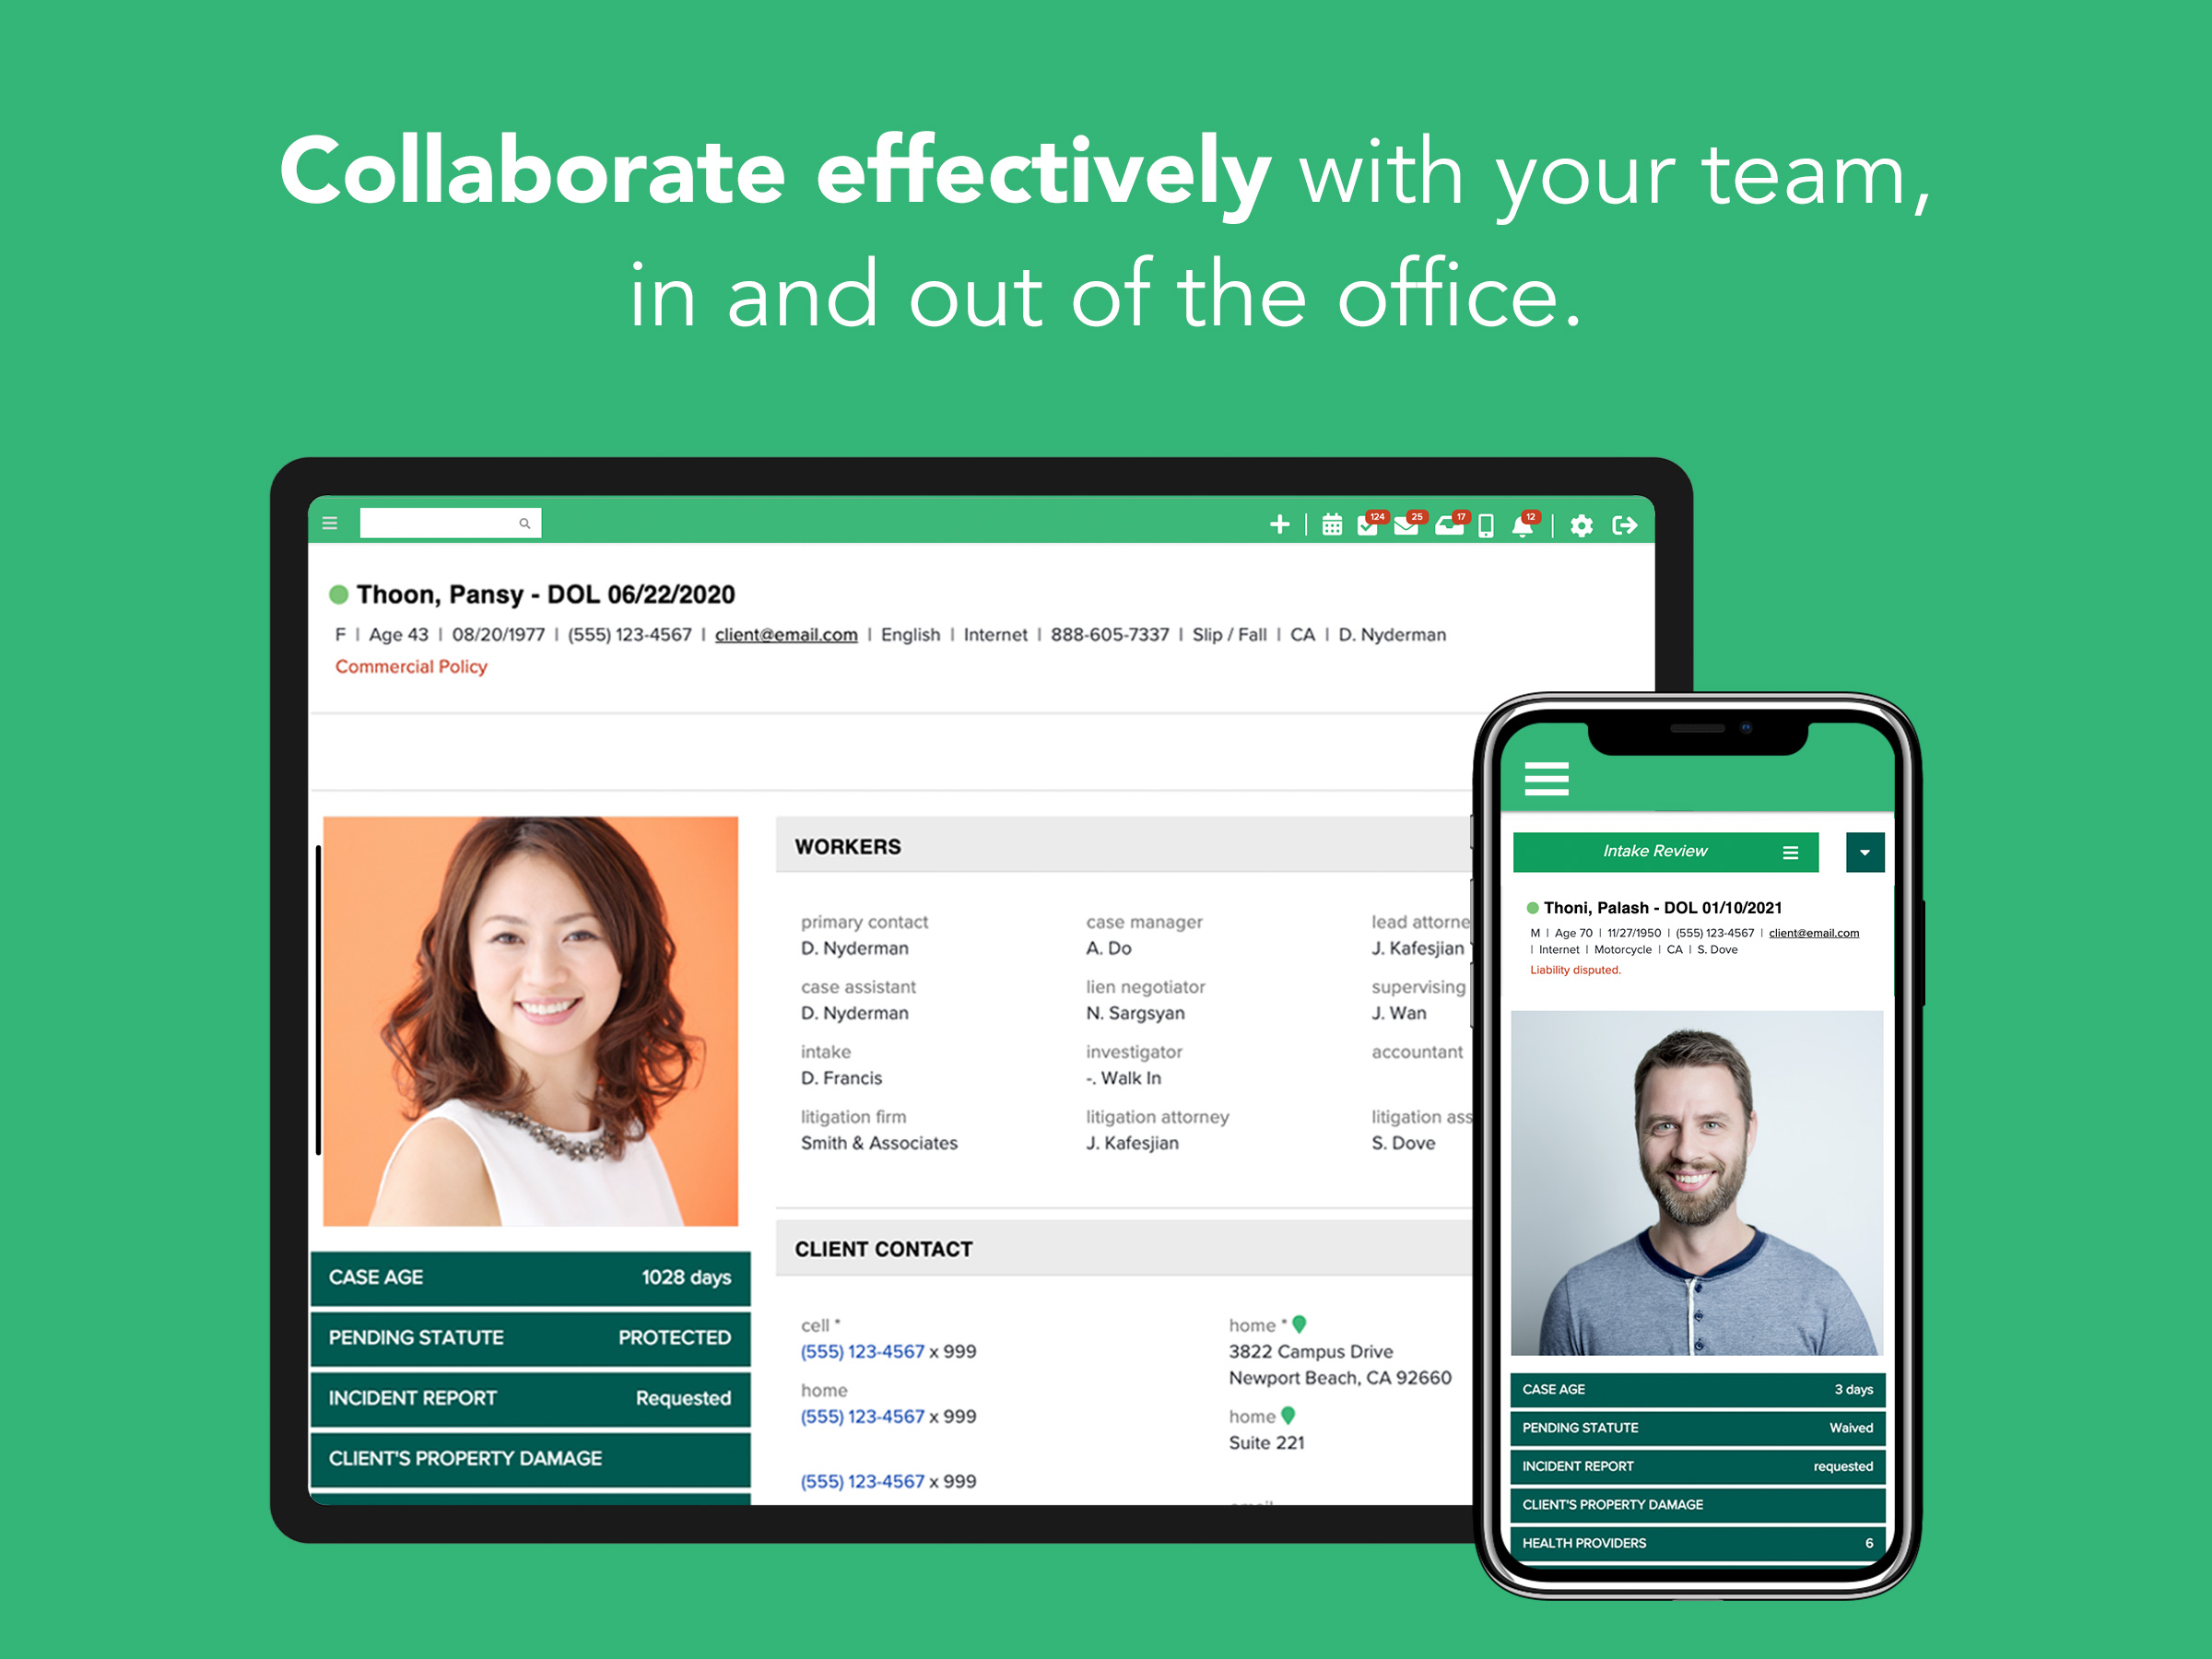 CASEpeer empowers personal injury law firms to collaborate effectively, in and out of the office. Our accountability tools and activity tracking give you confidence your clients are receiving the best possible care.